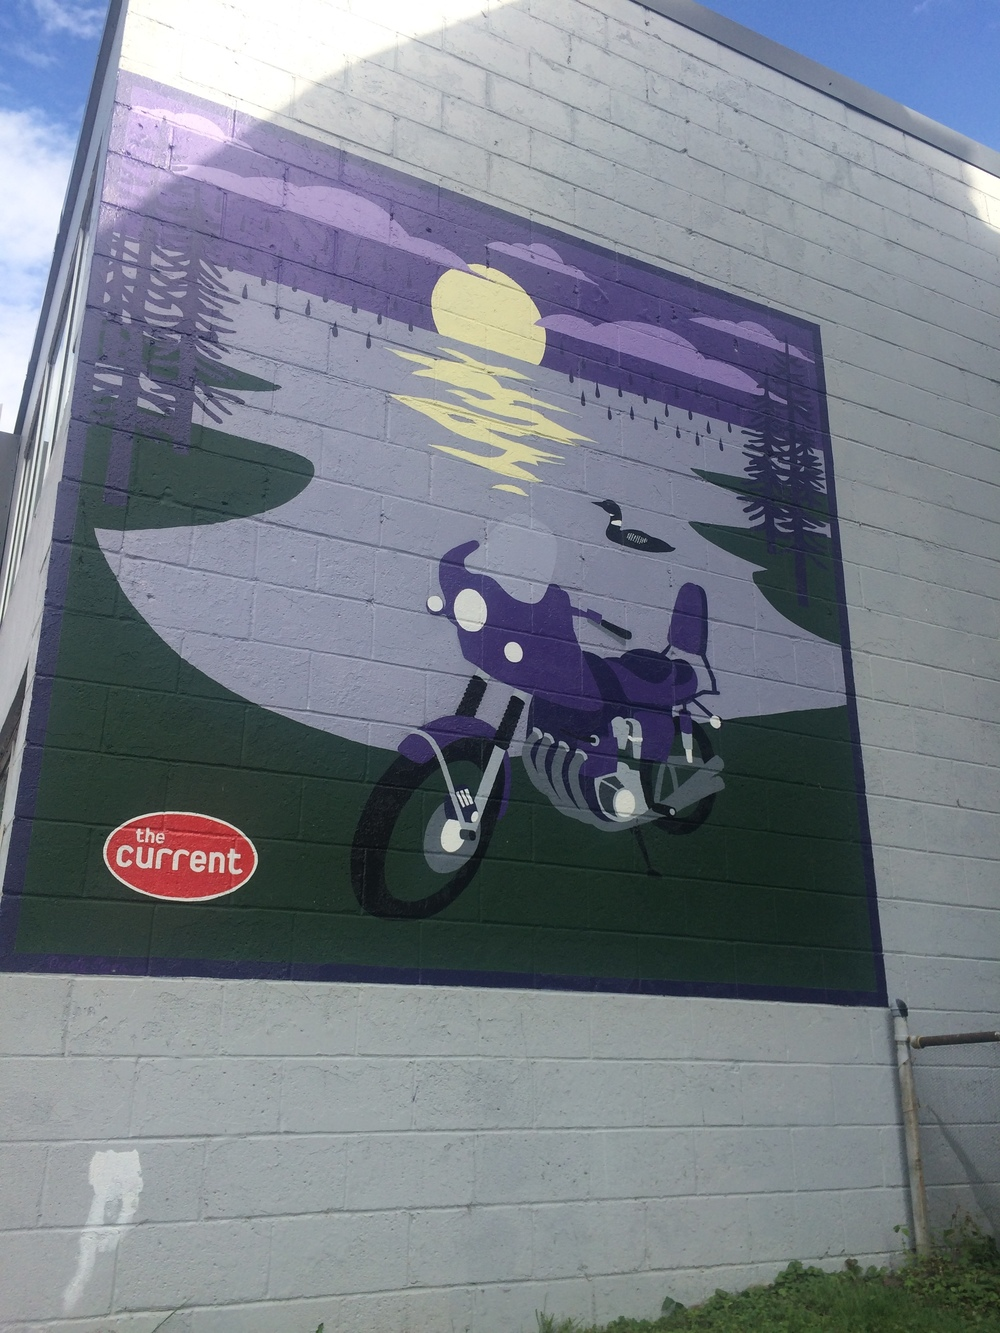 Found this cool painting of a purple motorcycle near the Uptown neighborhood of Minneapolis. I assume it's inspired by Purple Rain